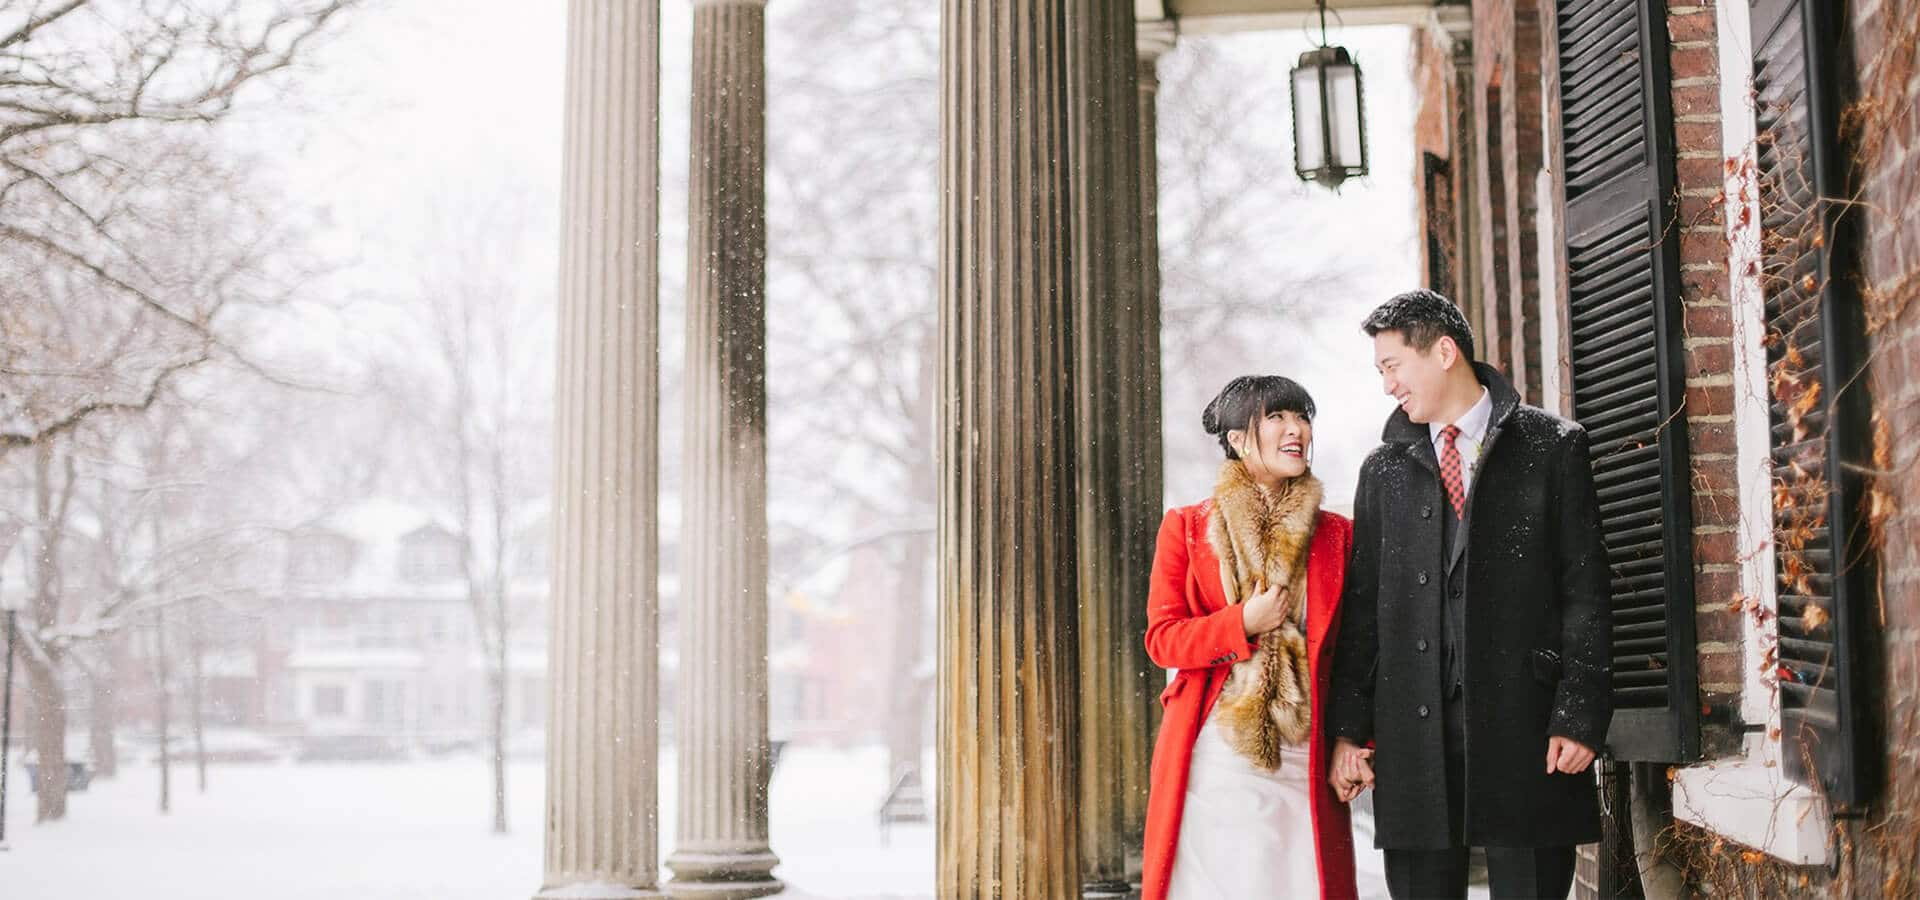 Hero image for Karen and Frank's Urban Winter Wedding at Hotel Ocho